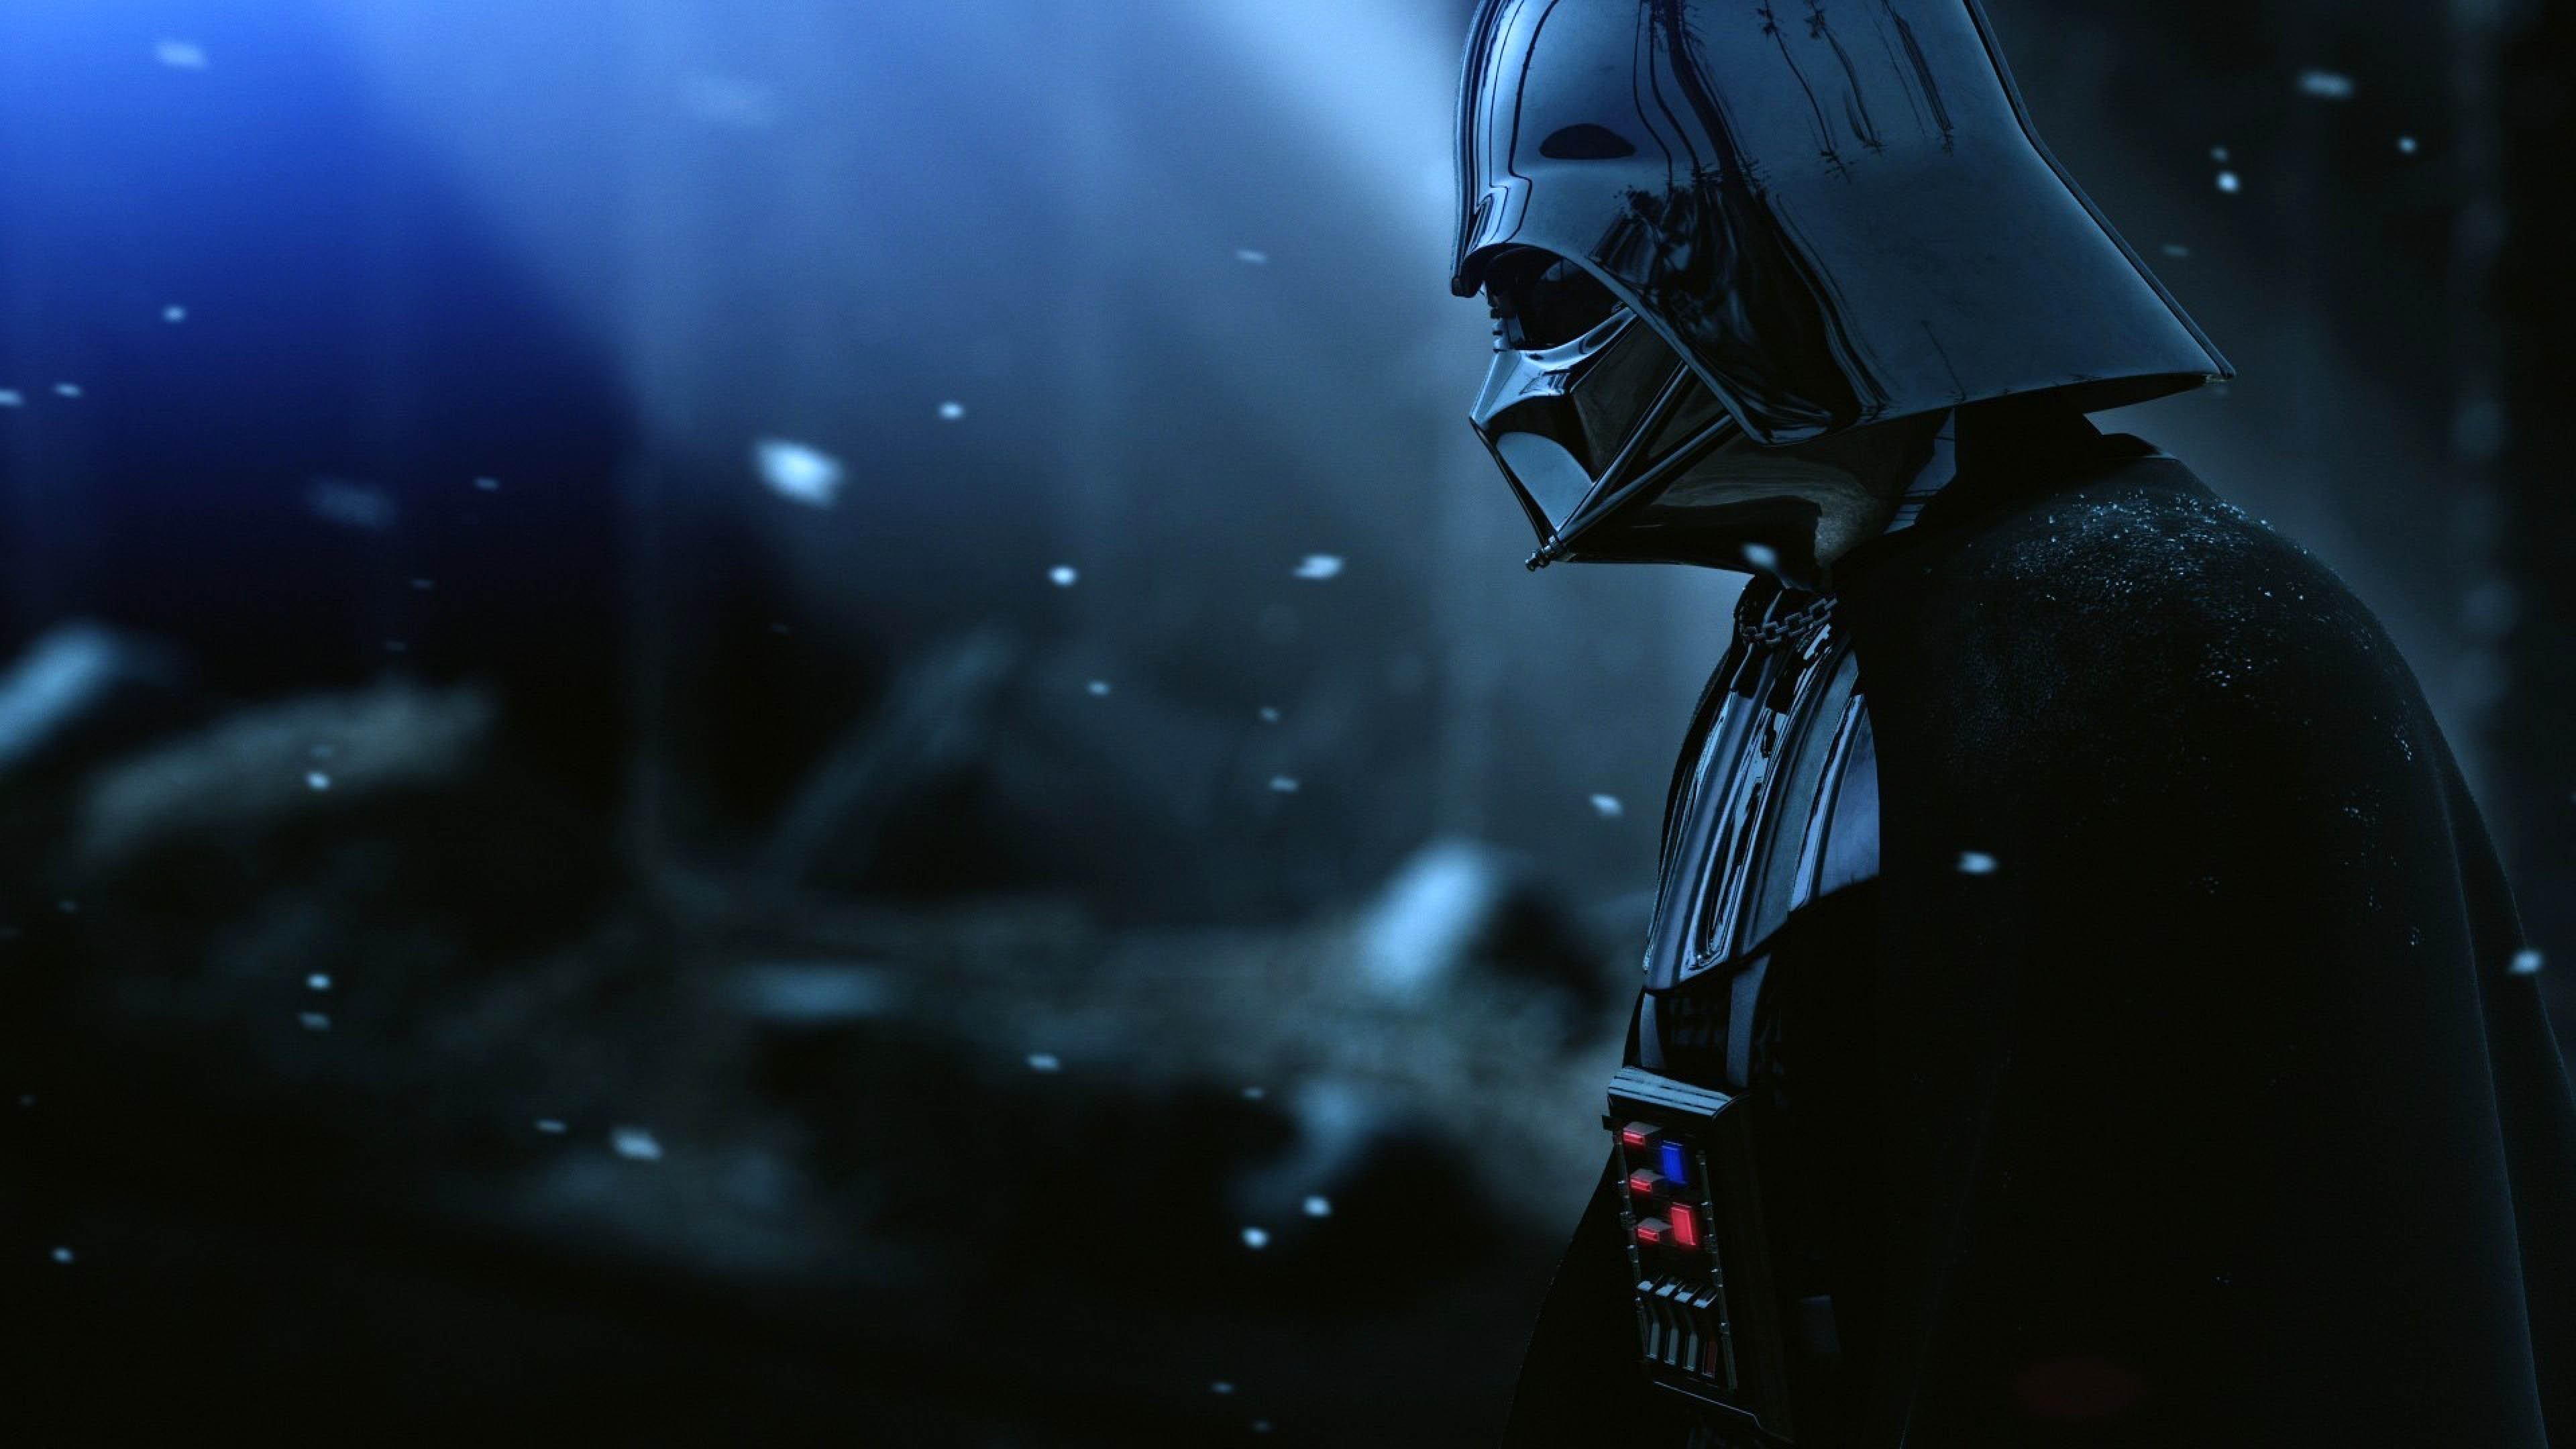 49 Uhd Star Wars Wallpaper On Wallpapersafari